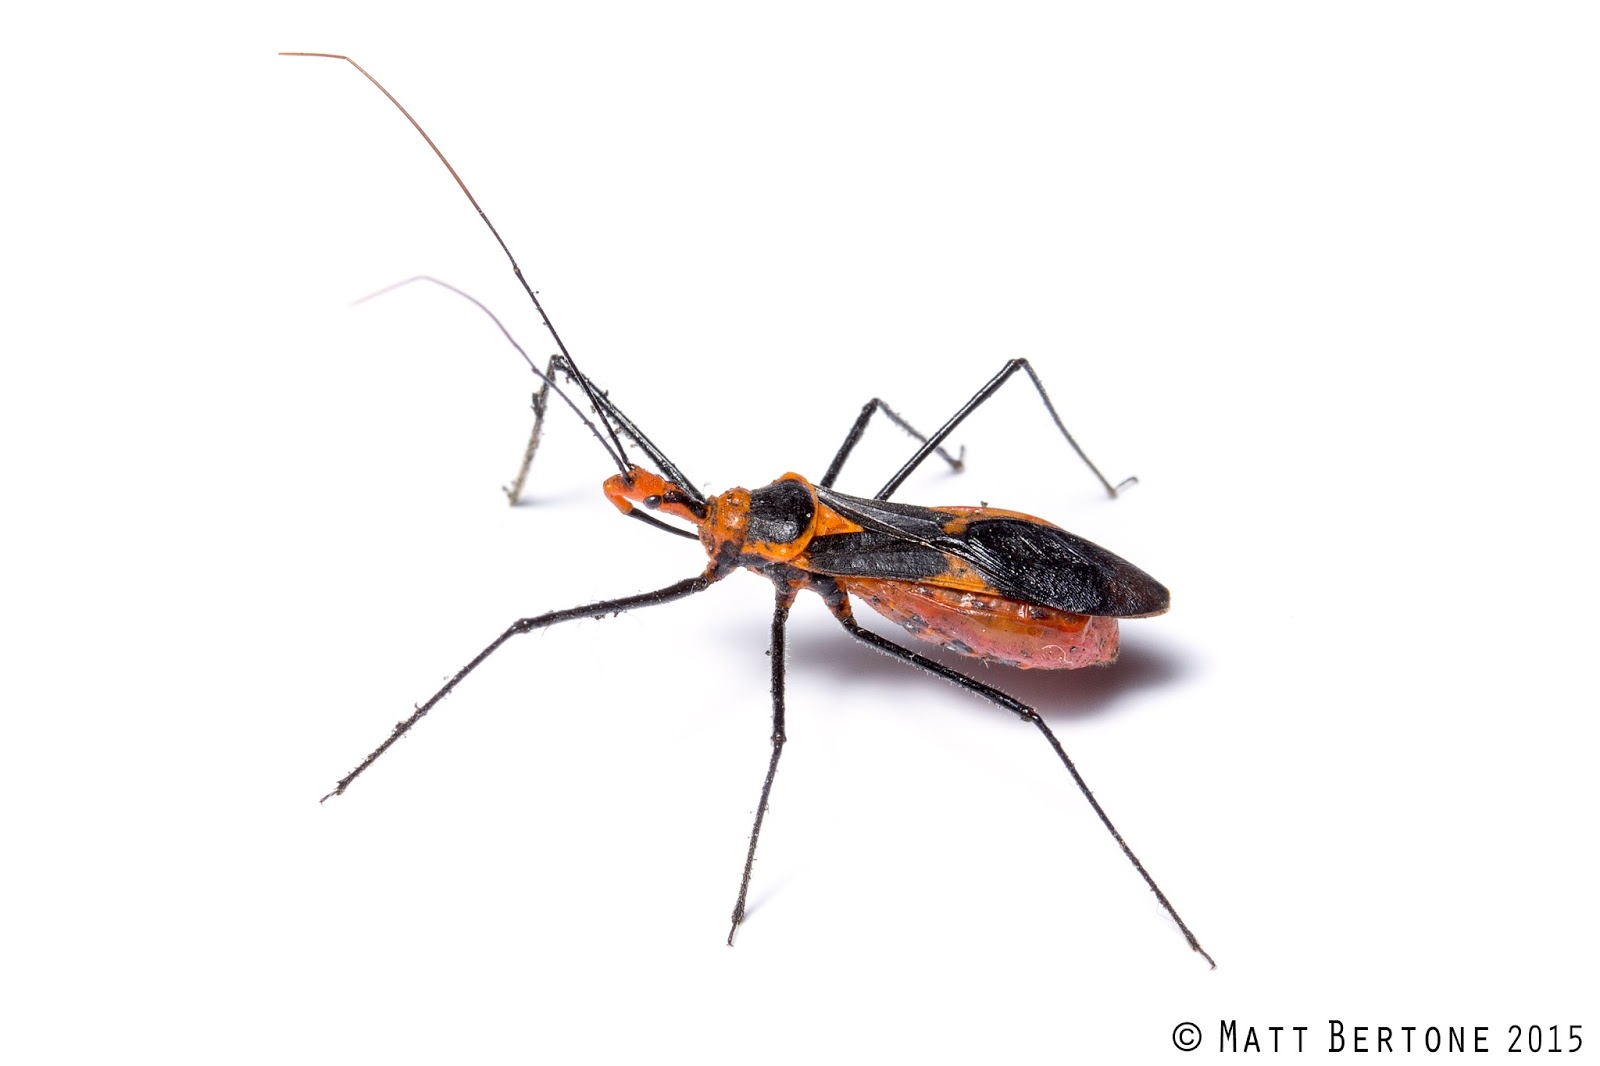 Ncsu Pdic Kissing Bugs And Chagas Disease In Nc